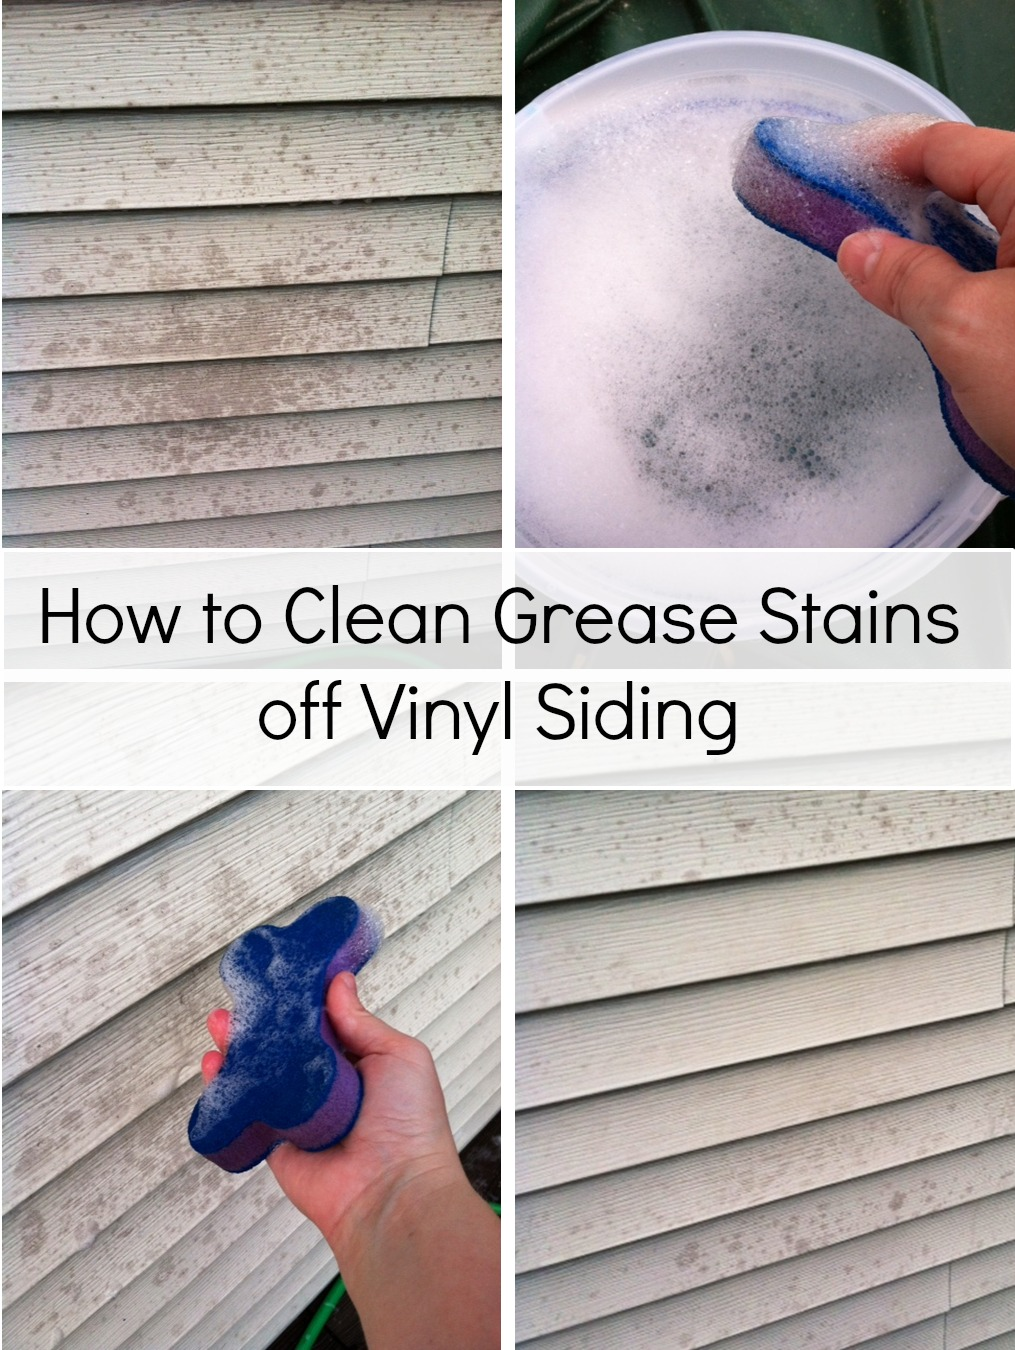 Vinegar And Water To Clean Vinyl Siding